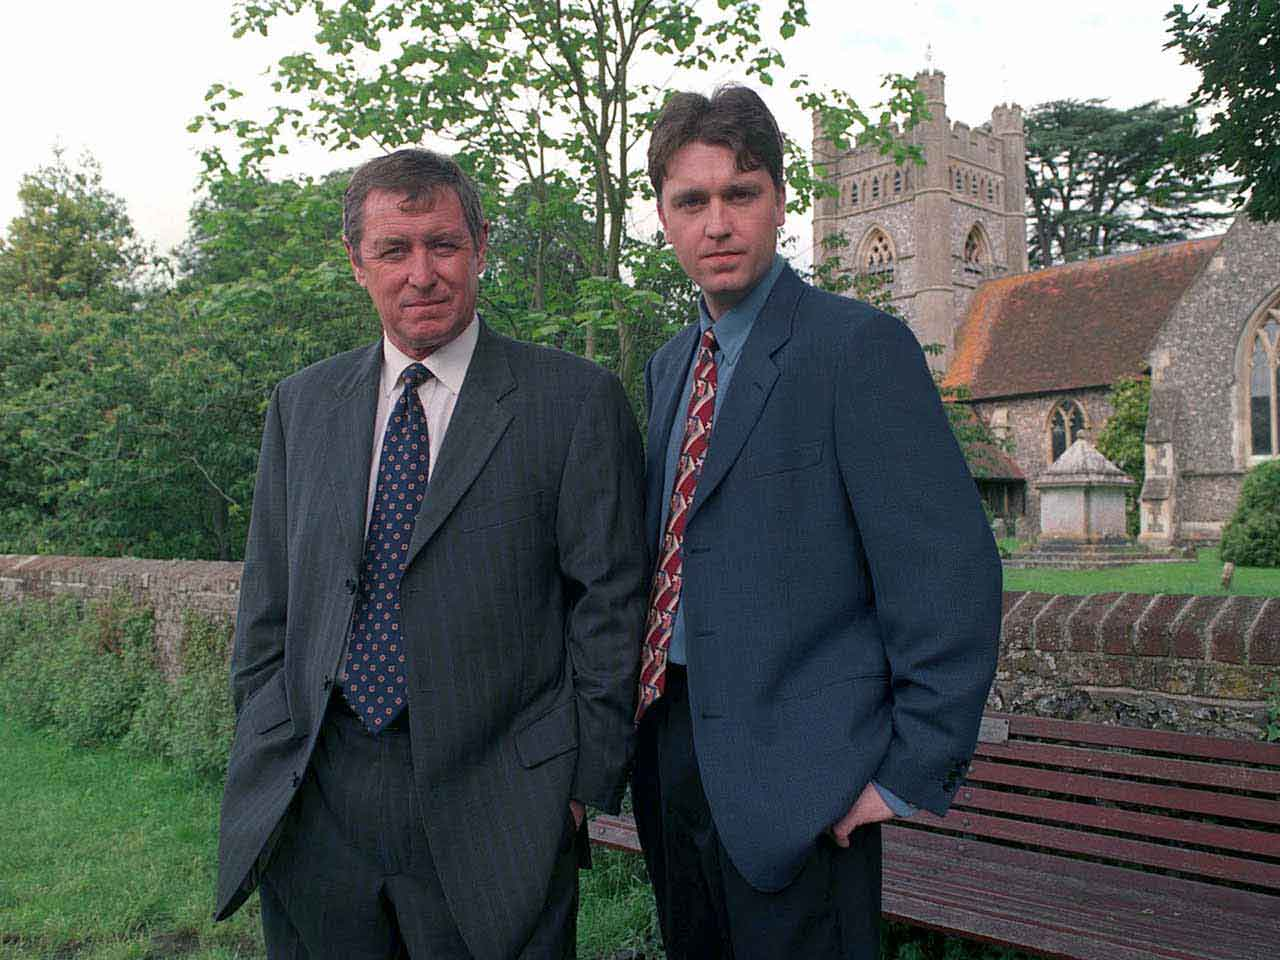 Daniel Casey (right) with John Nettles in Midsomer Murders